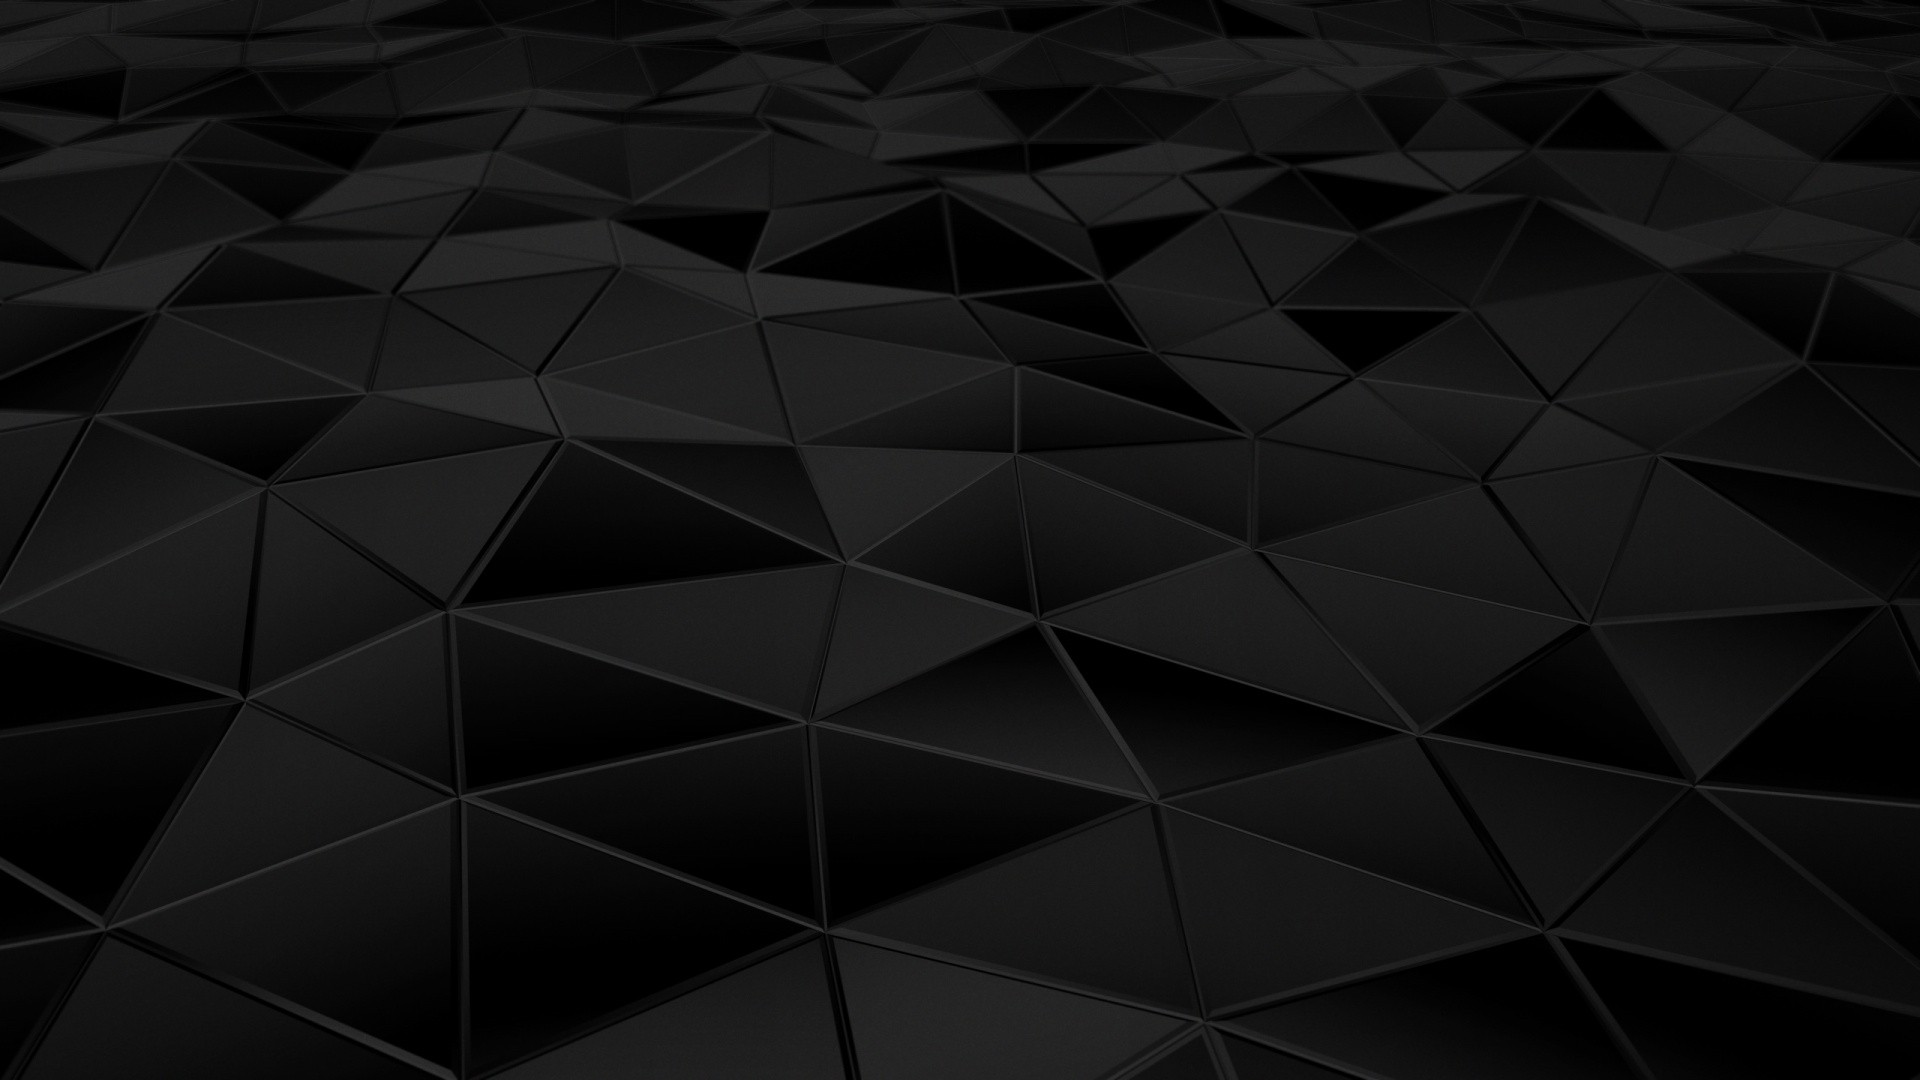 Dark Mode Free Wallpaper and Background